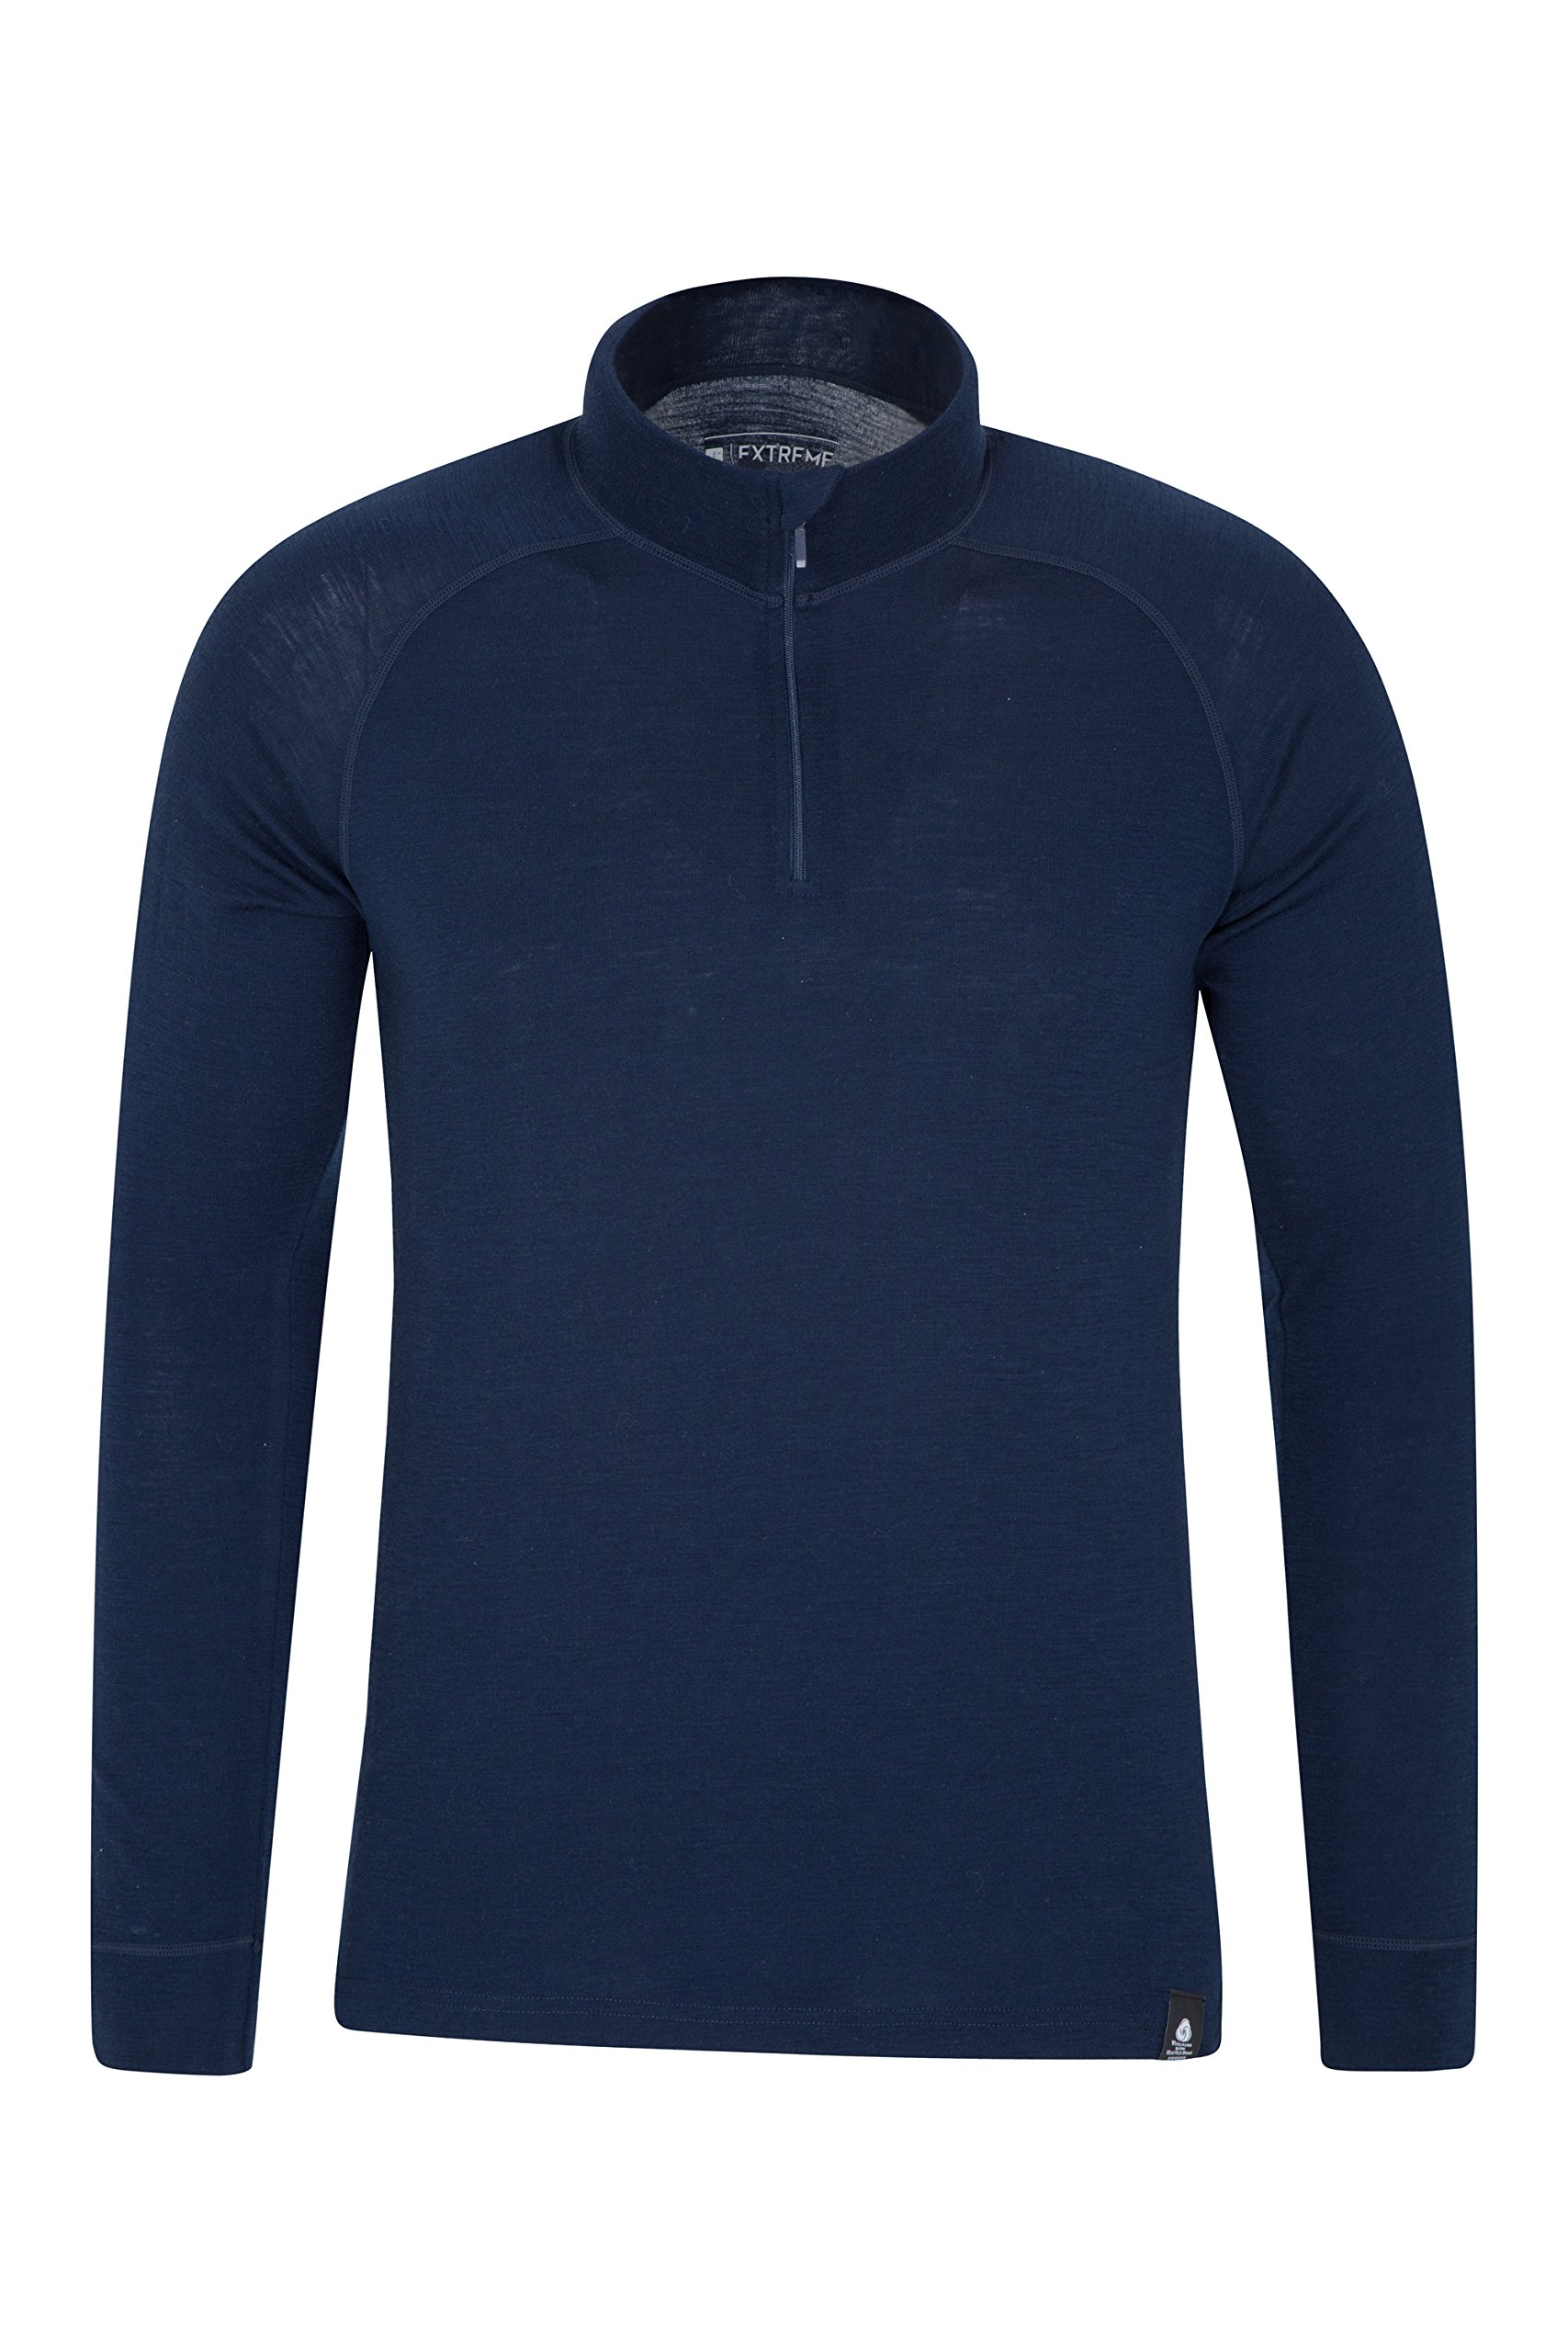 Mountain Warehouse Merino Mens Top - Breathable Tshirt, Half Zip Tee Navy Small by Mountain Warehouse